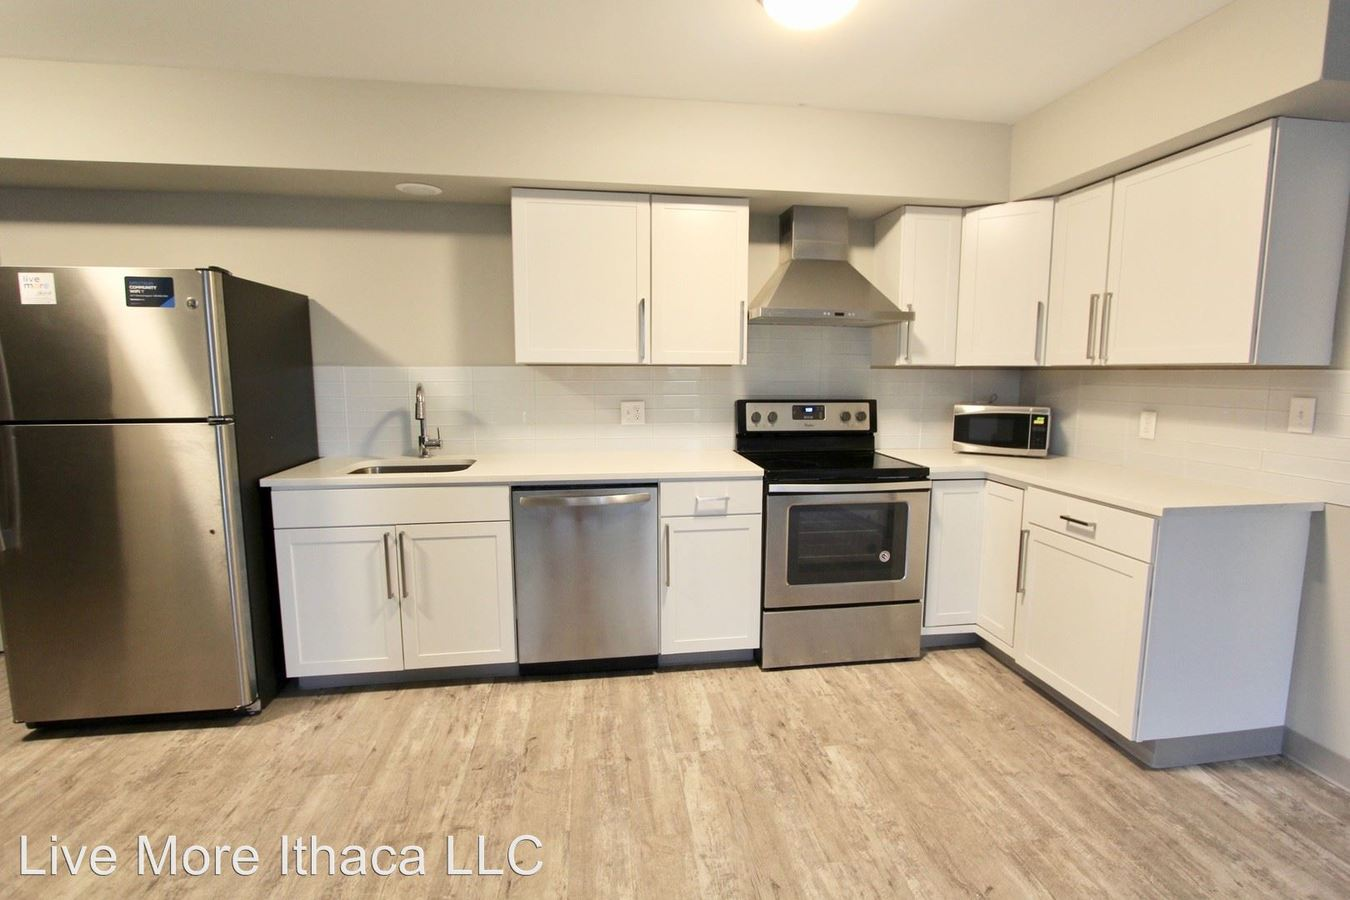 3 Bedrooms 2 Bathrooms Apartment for rent at 114 Summit Ave in Ithaca, NY